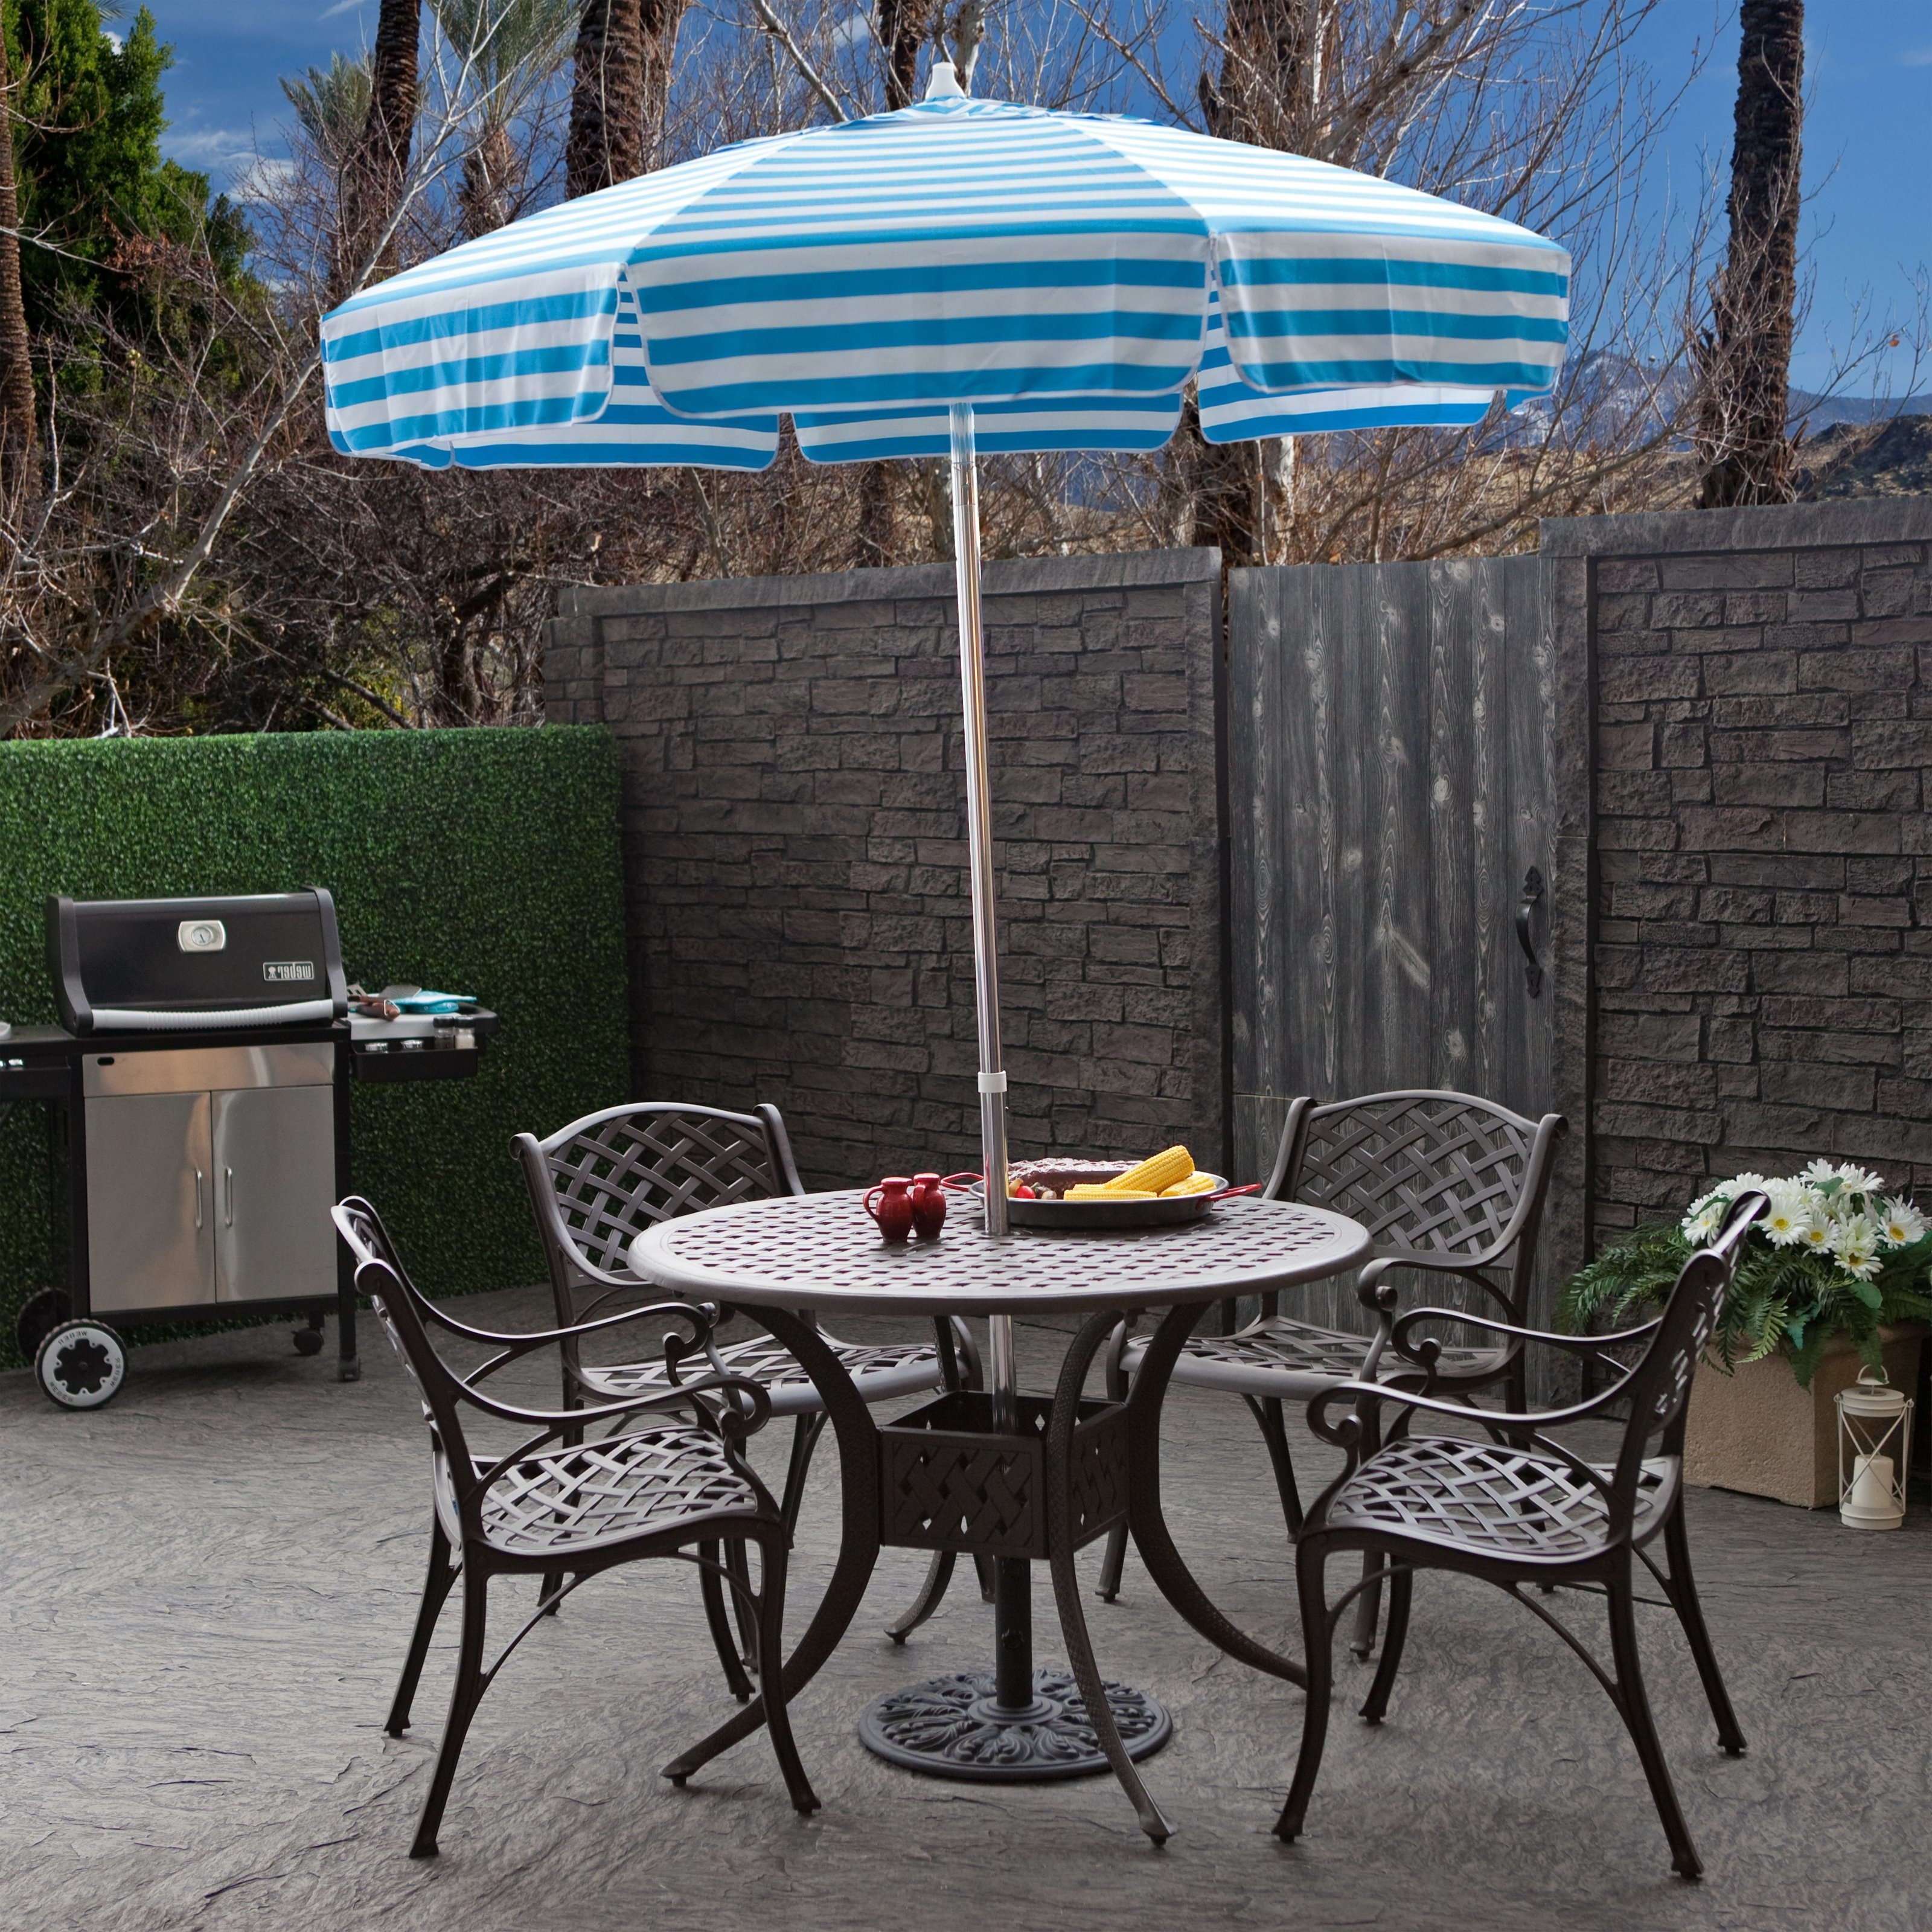 Patio Umbrellas For Tables For Well Known Incredible Patio Table Umbrellas Destinationgear 6 Ft Aluminum (View 10 of 20)